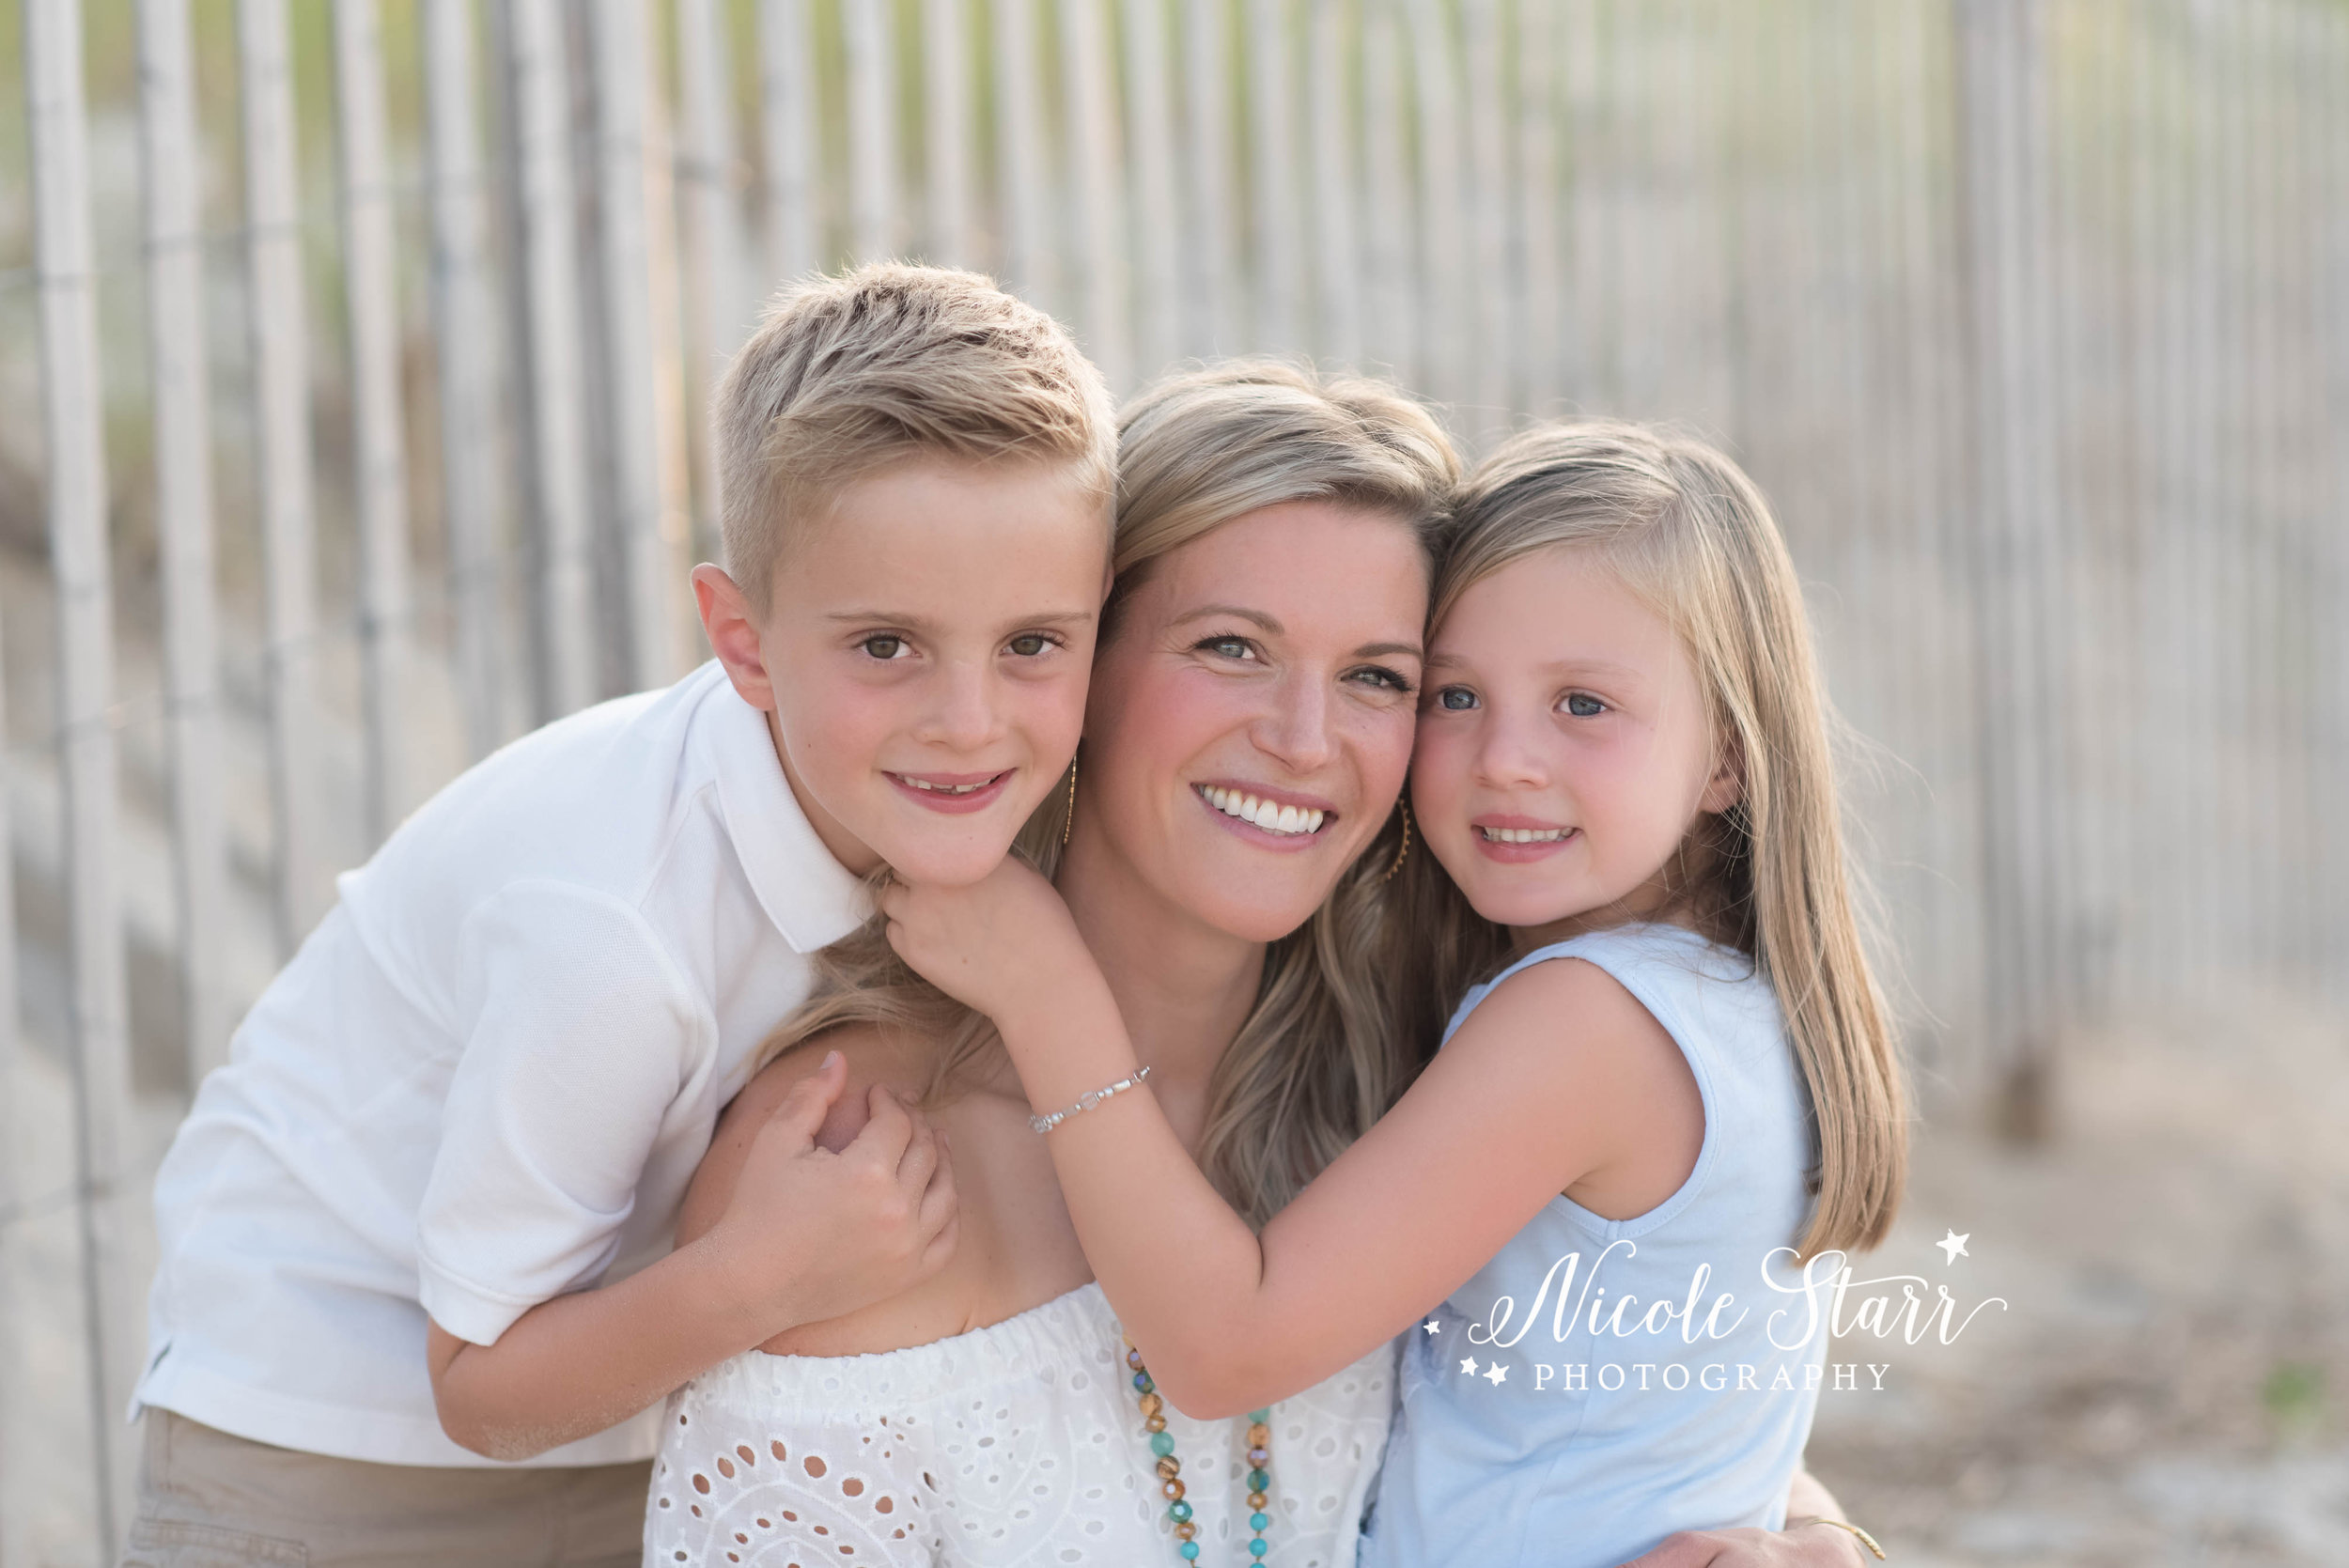 saratoga springs family photographer, boston family photographer, cape cod family photographer, albany family photographer, clifton park family photo session, saratoga photo shoot, nicole starr photography, top reasons to book a family photographer